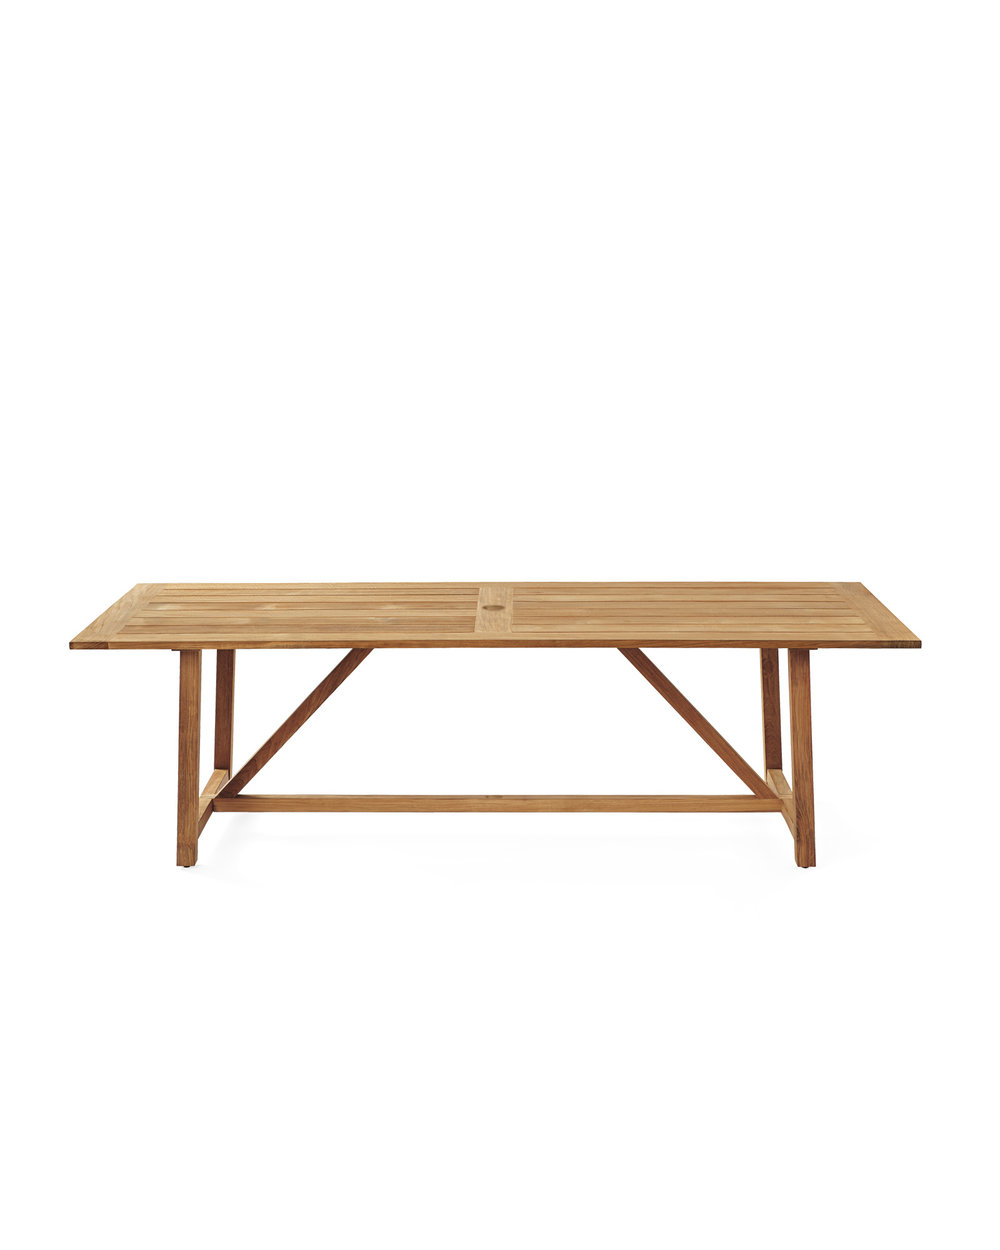 Crosby Table from Serena & Lily